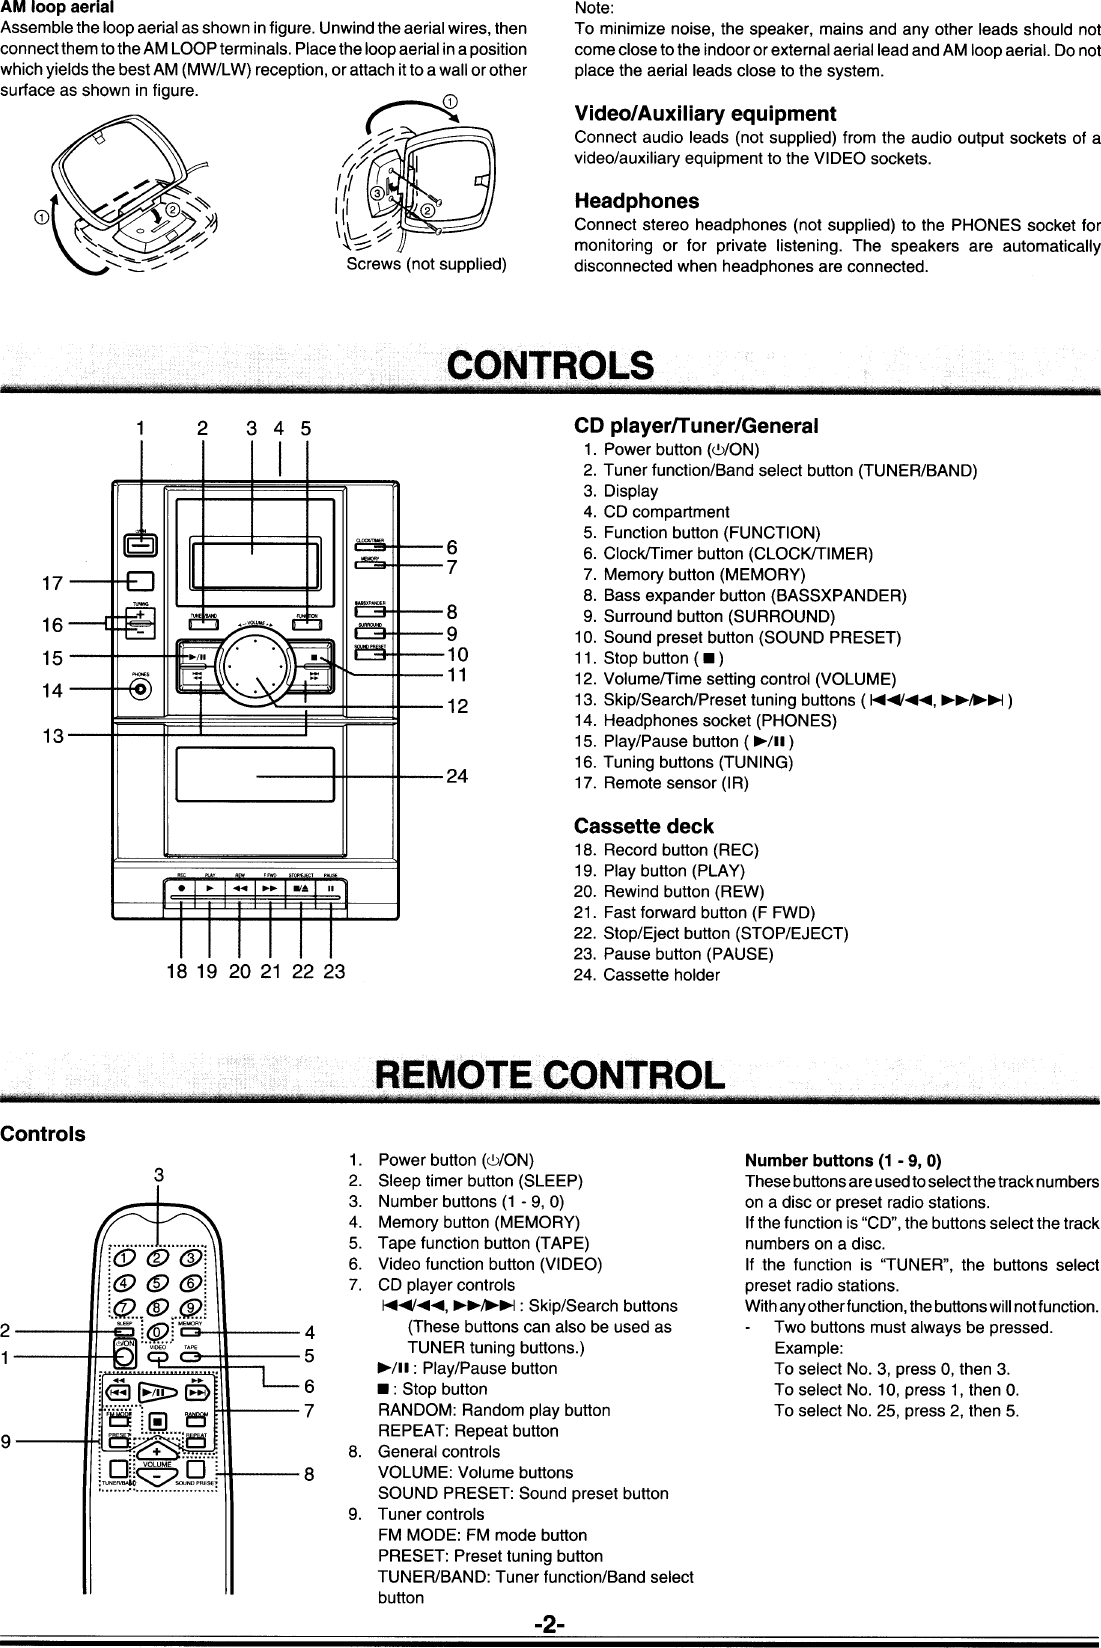 Magnificent Kib Monitor Panel Wiring Diagram Images - Everything You on grounding diagram, electricians diagram, telecommunications diagram, installation diagram, instrumentation diagram, assembly diagram, drilling diagram, solar panels diagram, troubleshooting diagram, panel wiring icon, rslogix diagram, plc diagram,